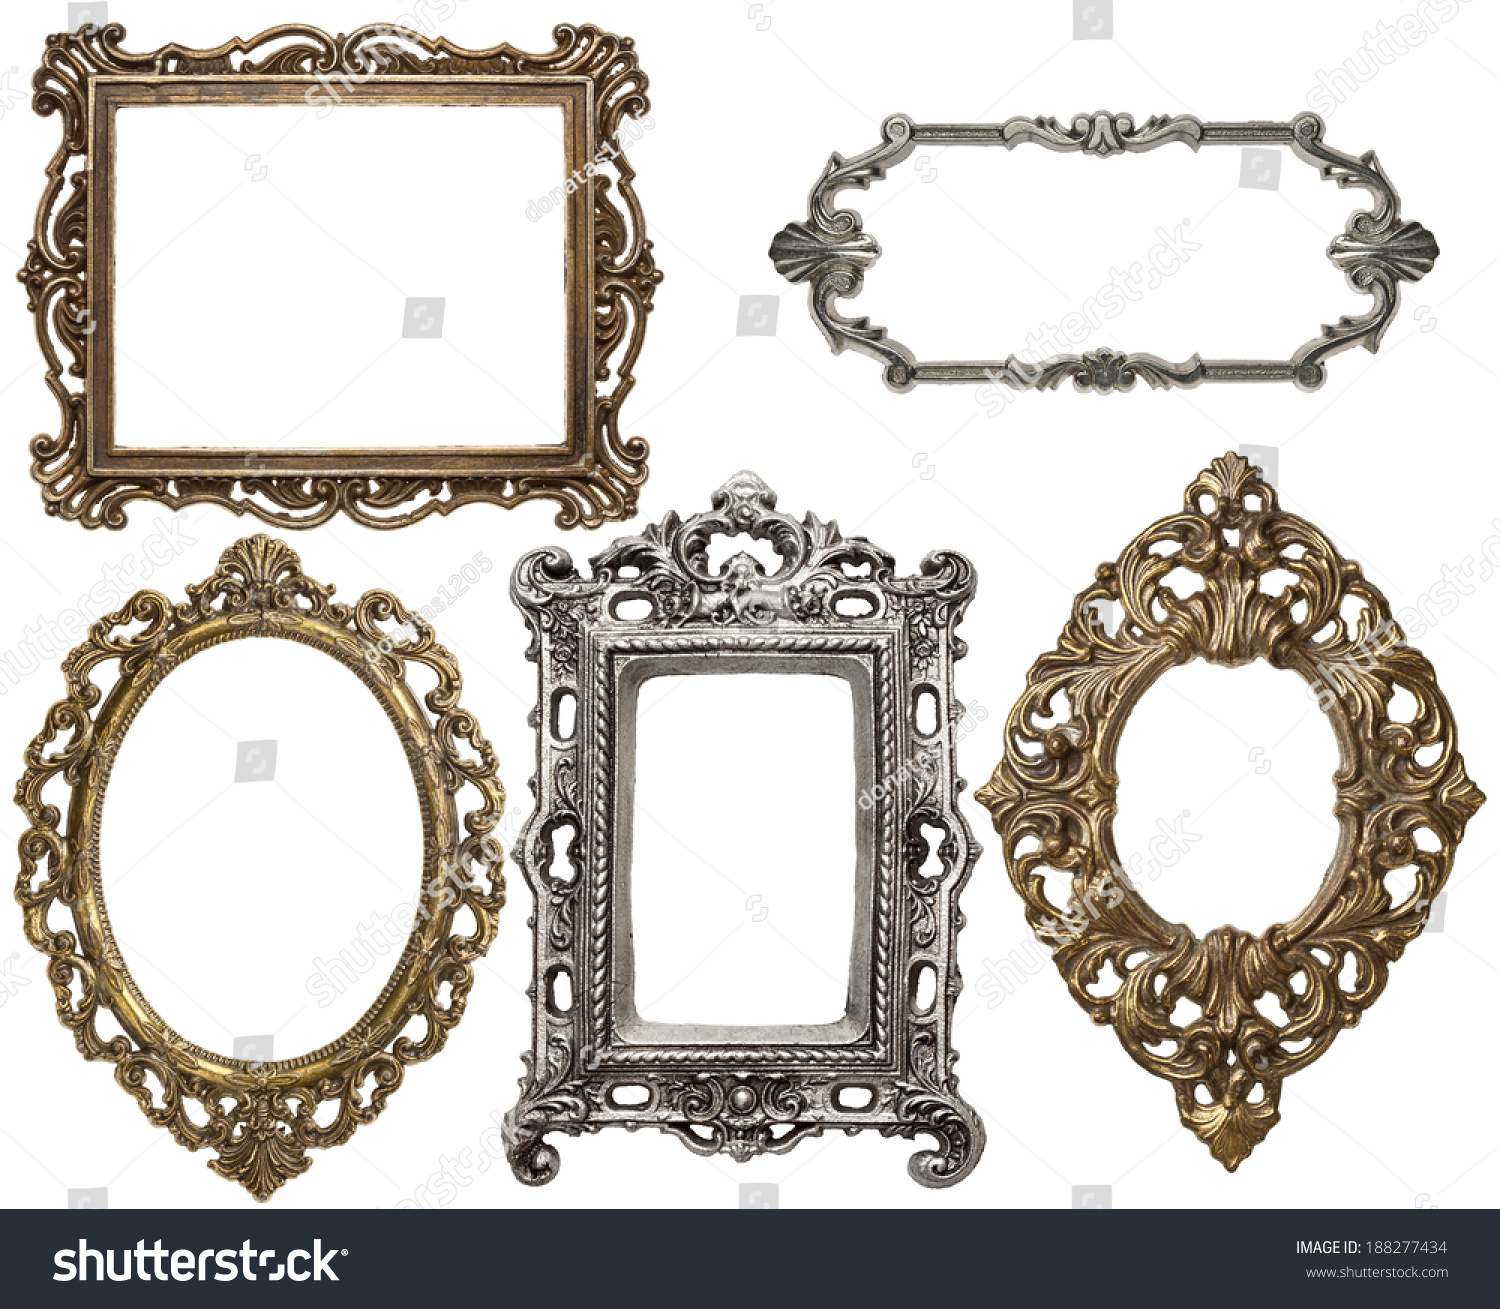 Vintage Metal Frames Isolated Stock Photo (Royalty Free) 188277434 ...